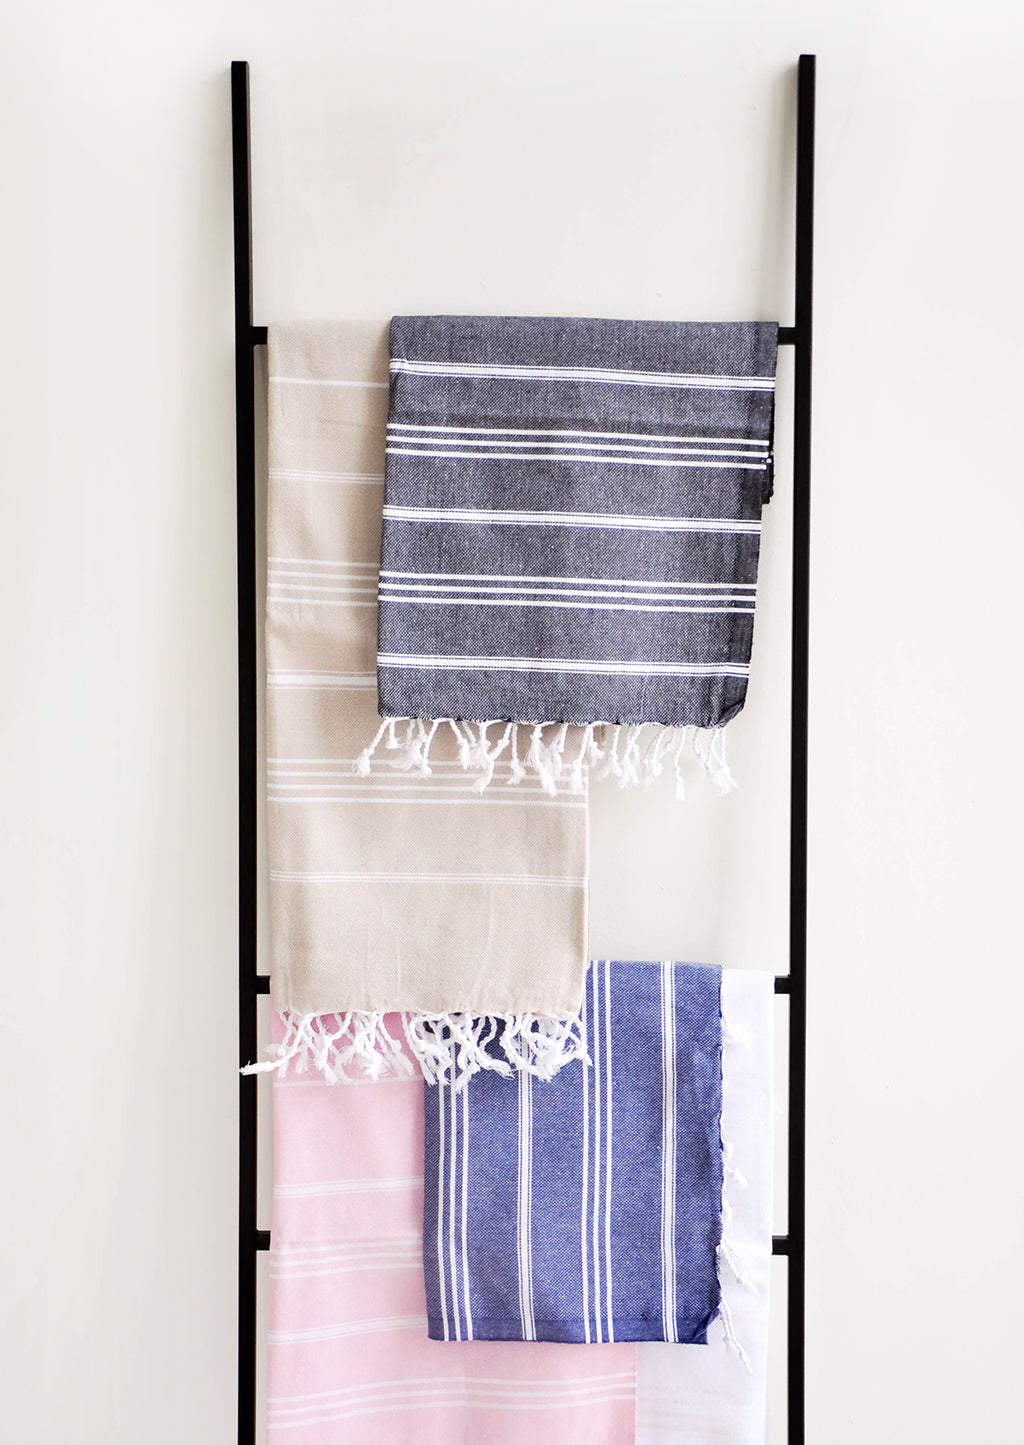 2: Colorful towels with white stripes in a variety of colors hung on a ladder